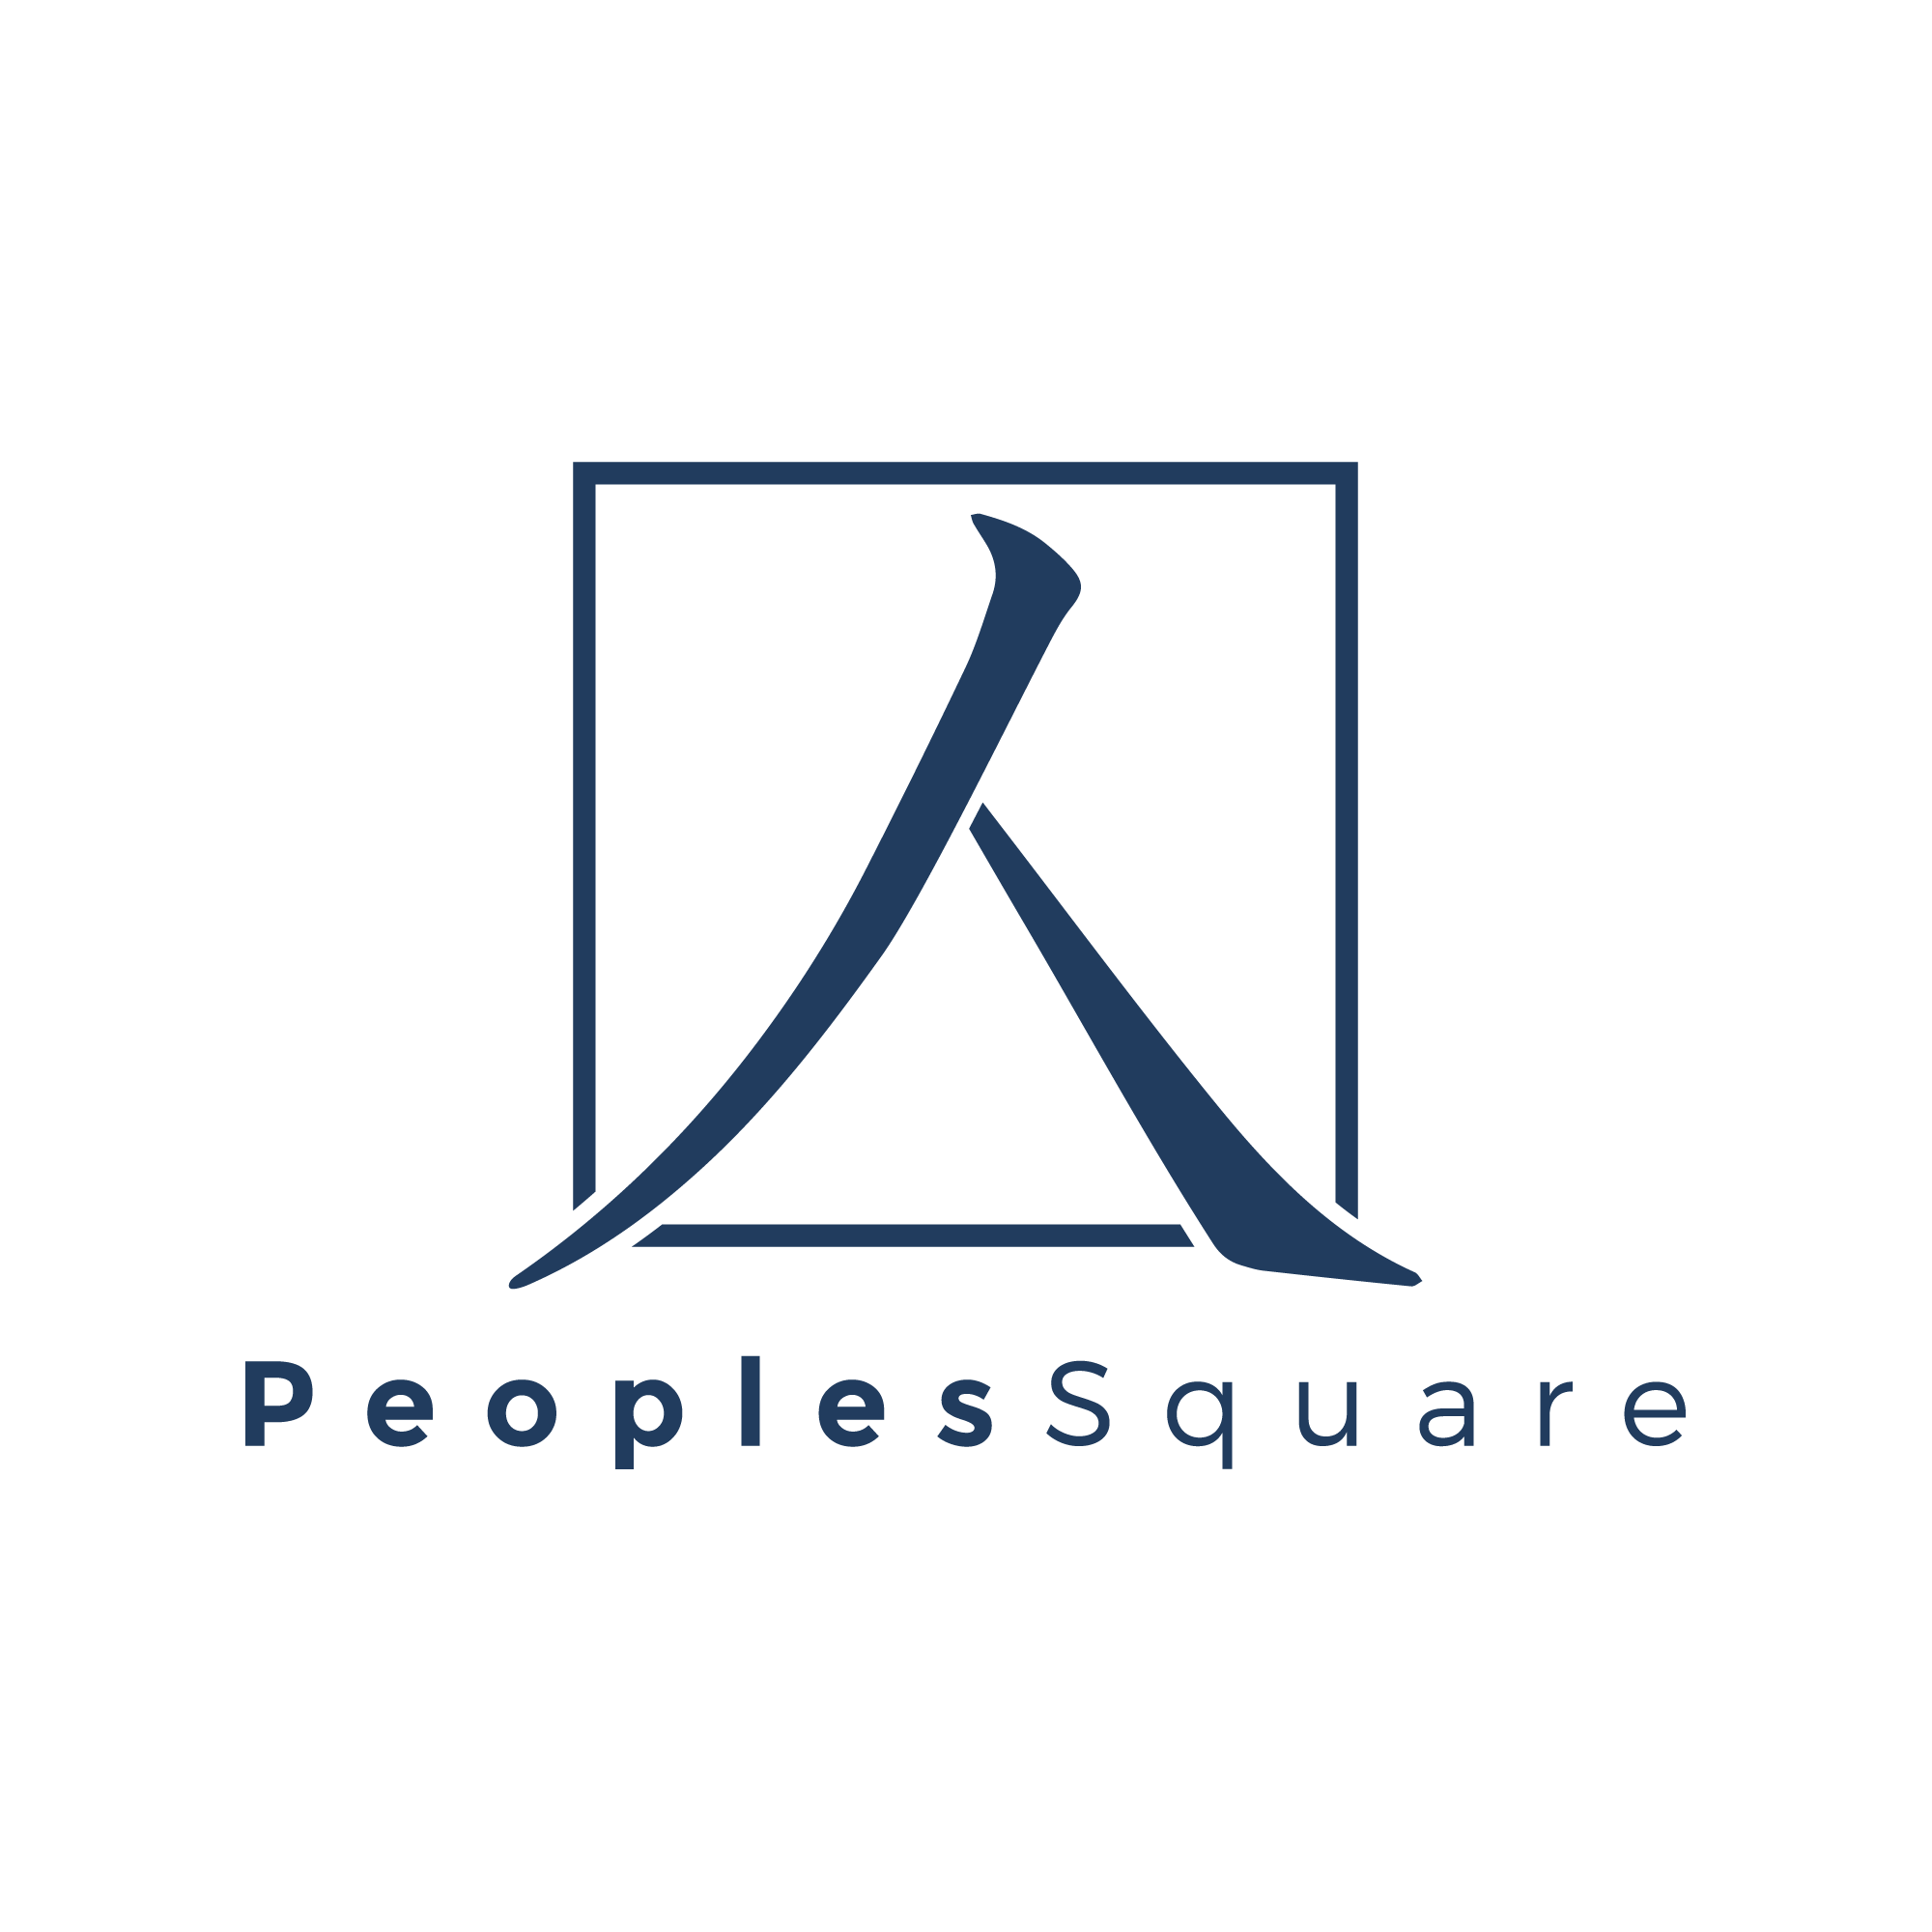 PeoplesSquare | Instagram Account Management & Marketing